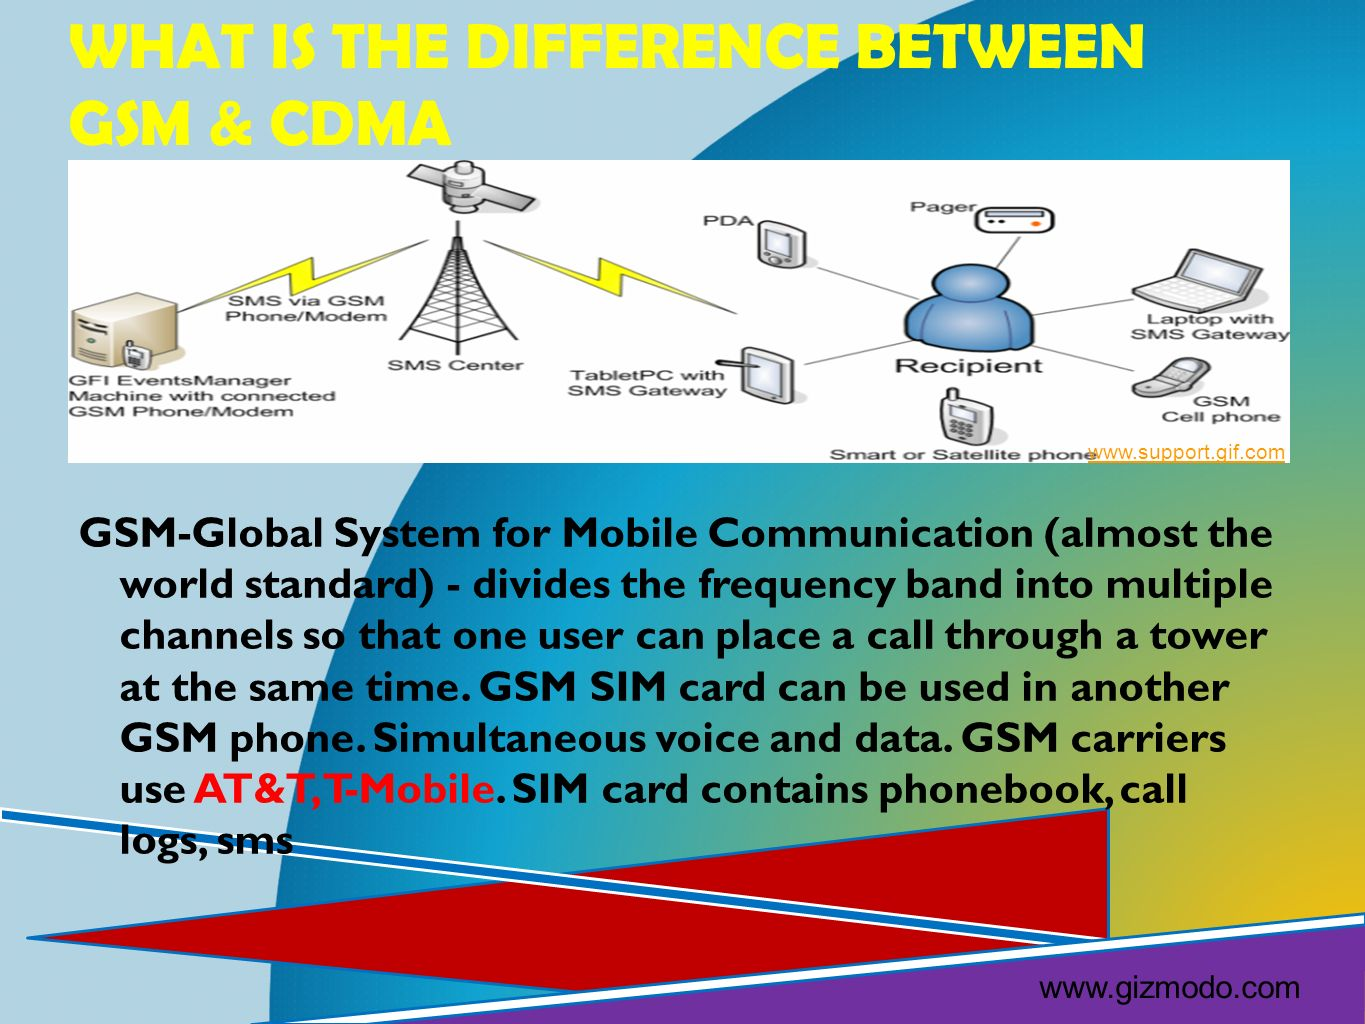 CDMA- Code Division Multiple Access (CDMA one 2G, CDMA2000-3G)- it digitized calls over one another, unpack them in code sequence.